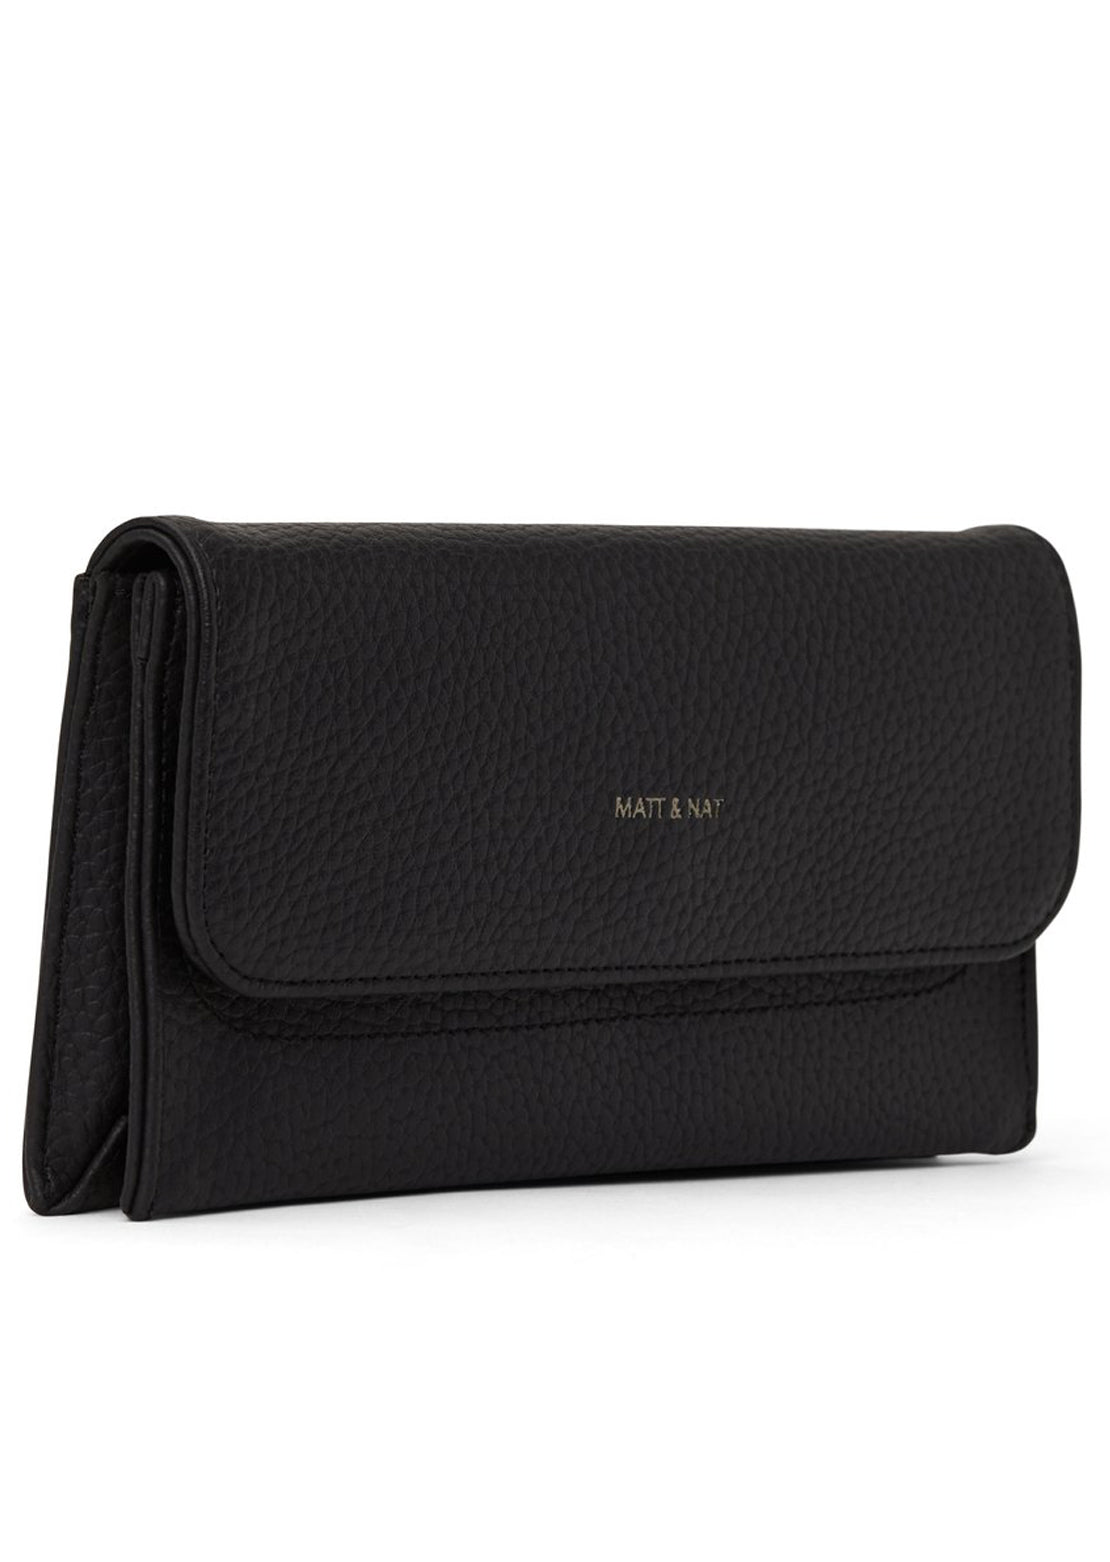 Matt & Nat Niki Purity Wallet Black